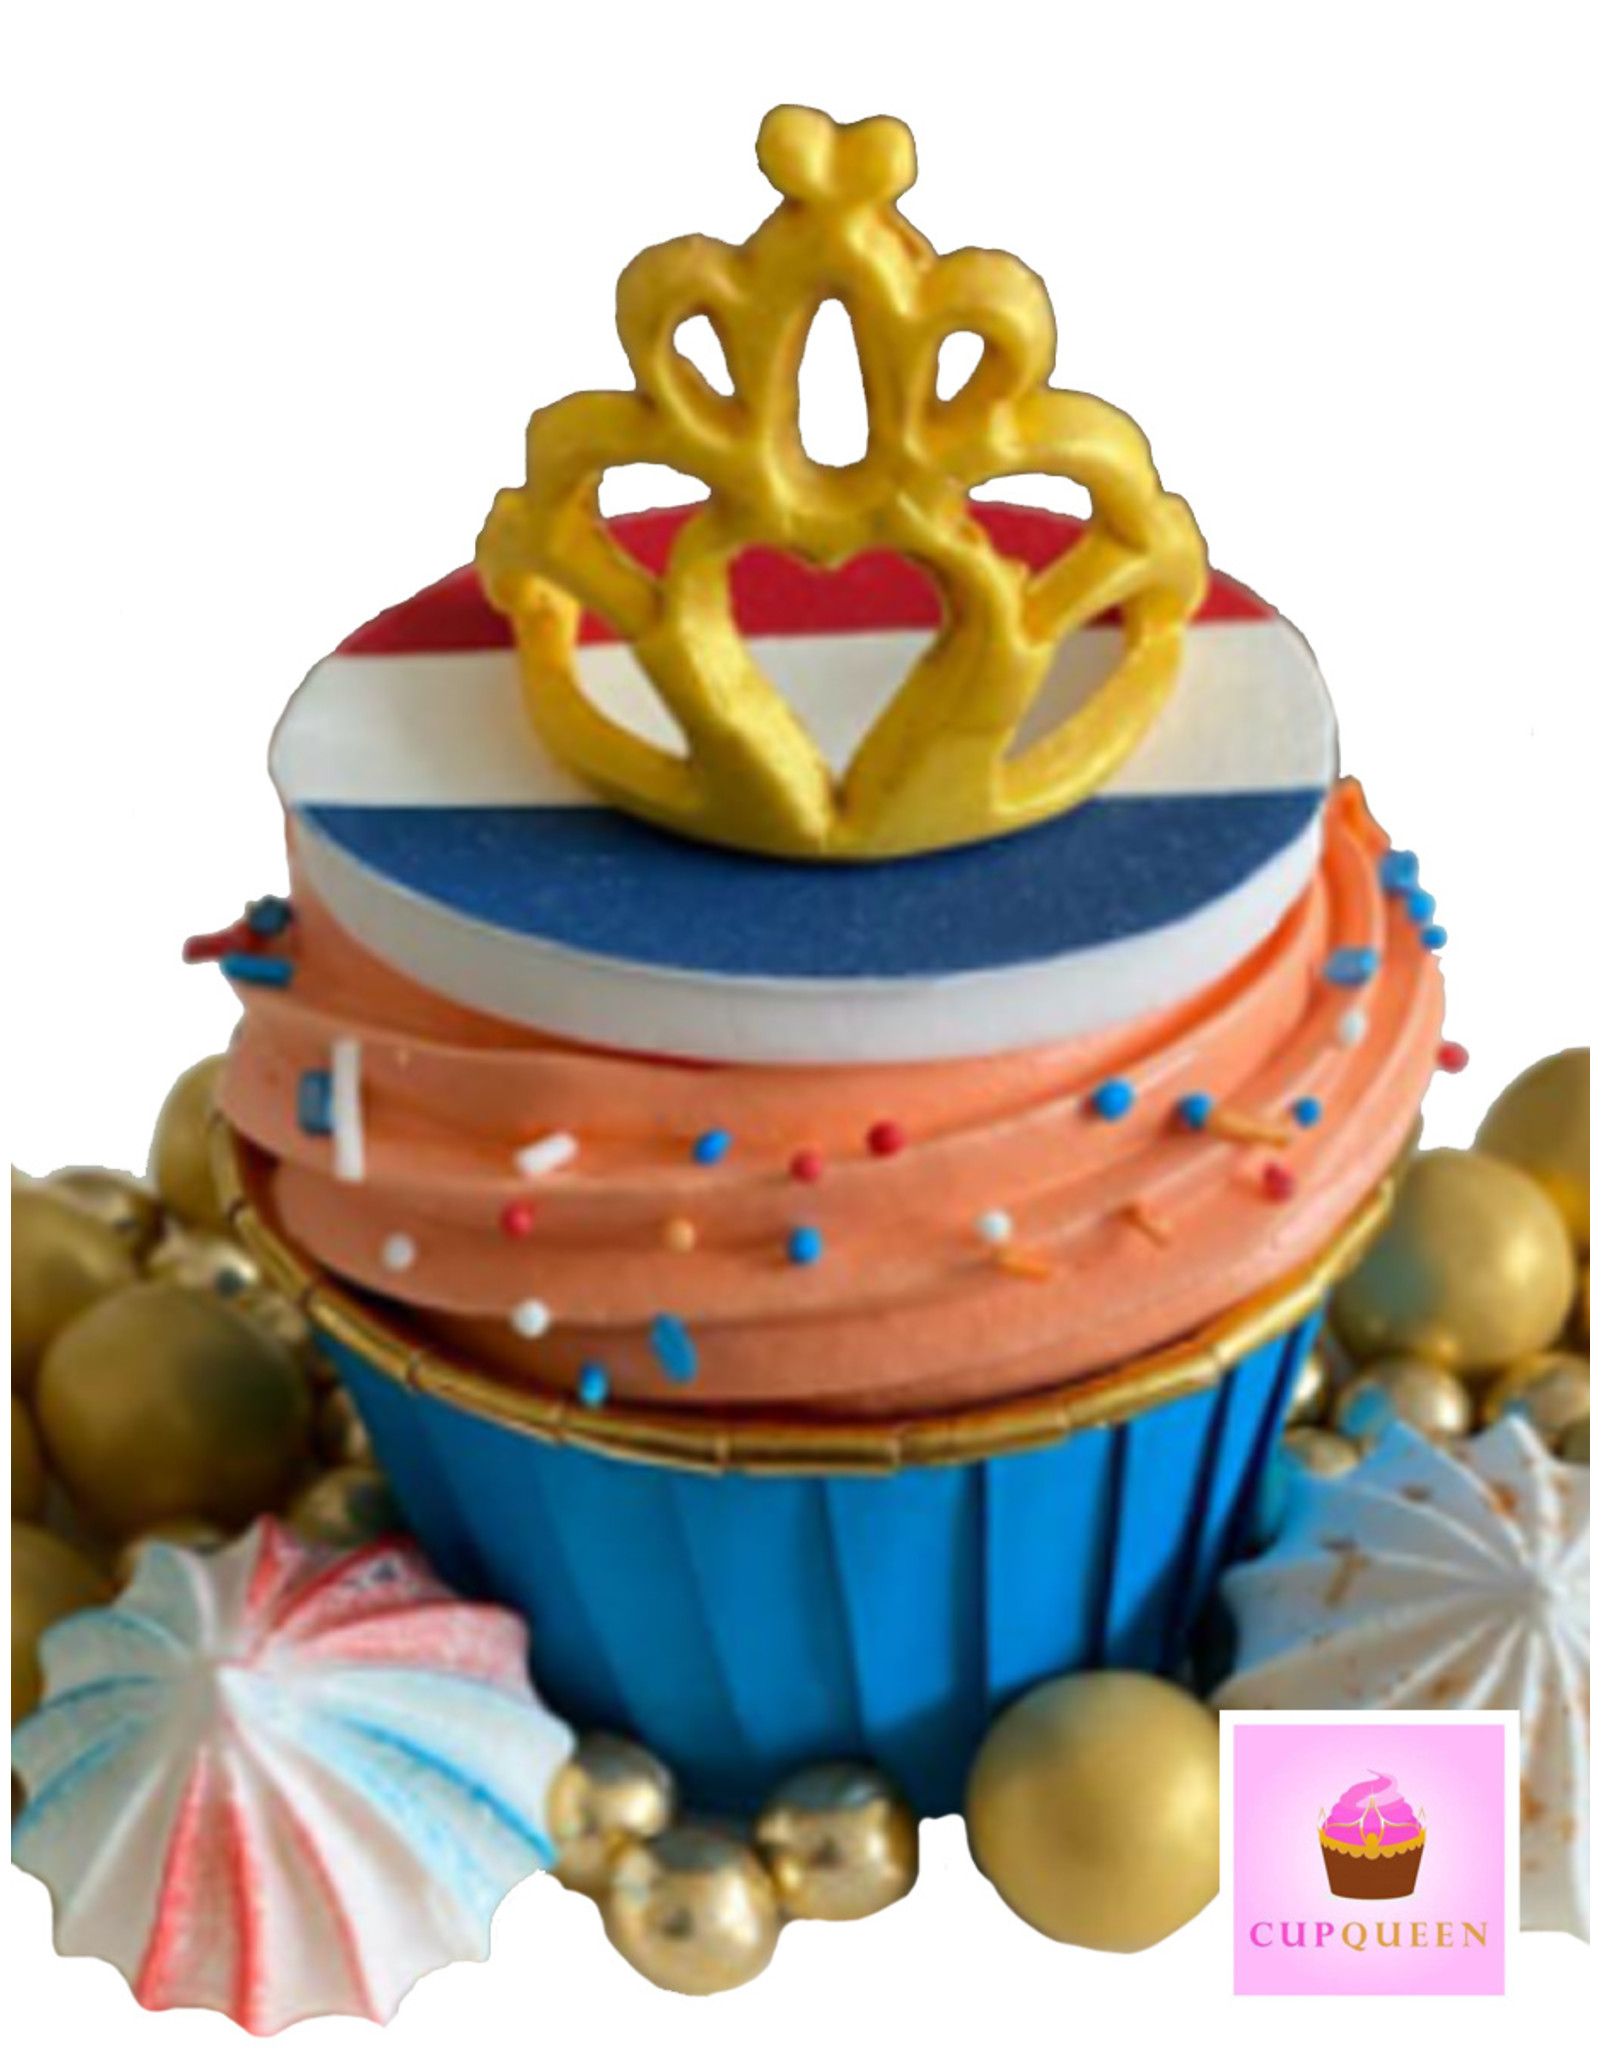 LAST STOCK Cupcake liners blue & gold (50 pieces)